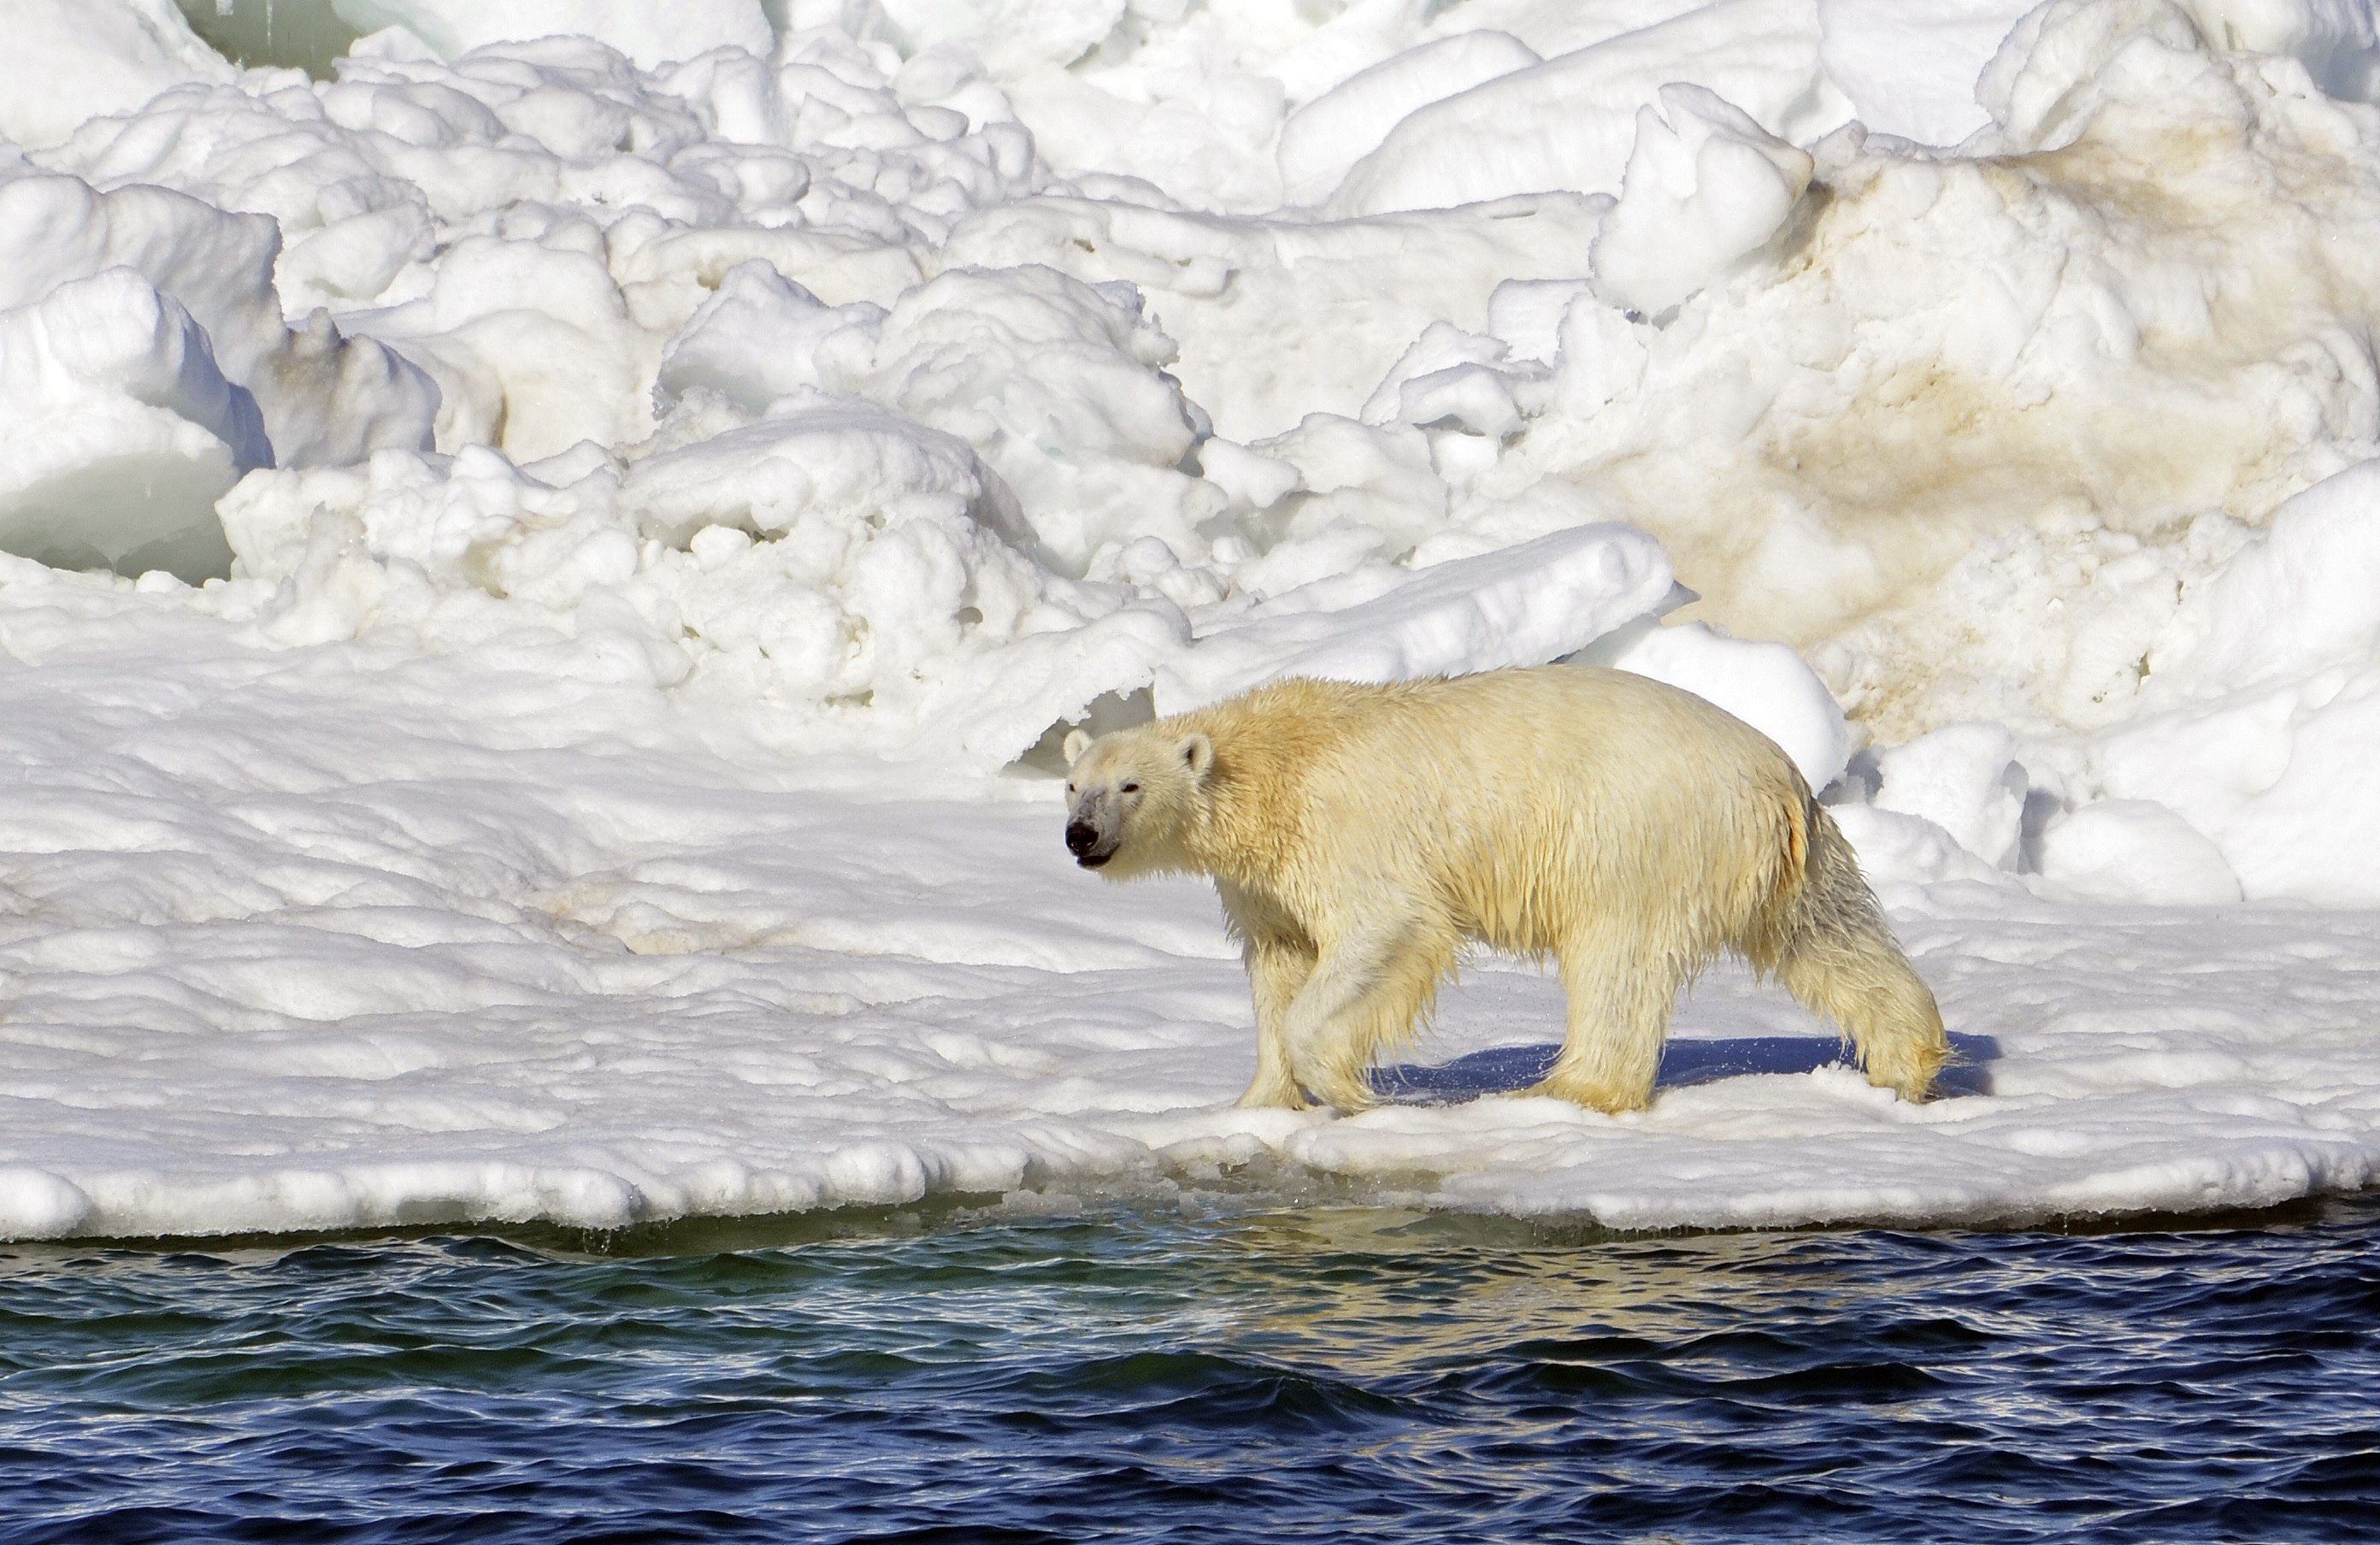 A Chukchi Sea oil spill would affect polar bears in both Chukotka and Alaska